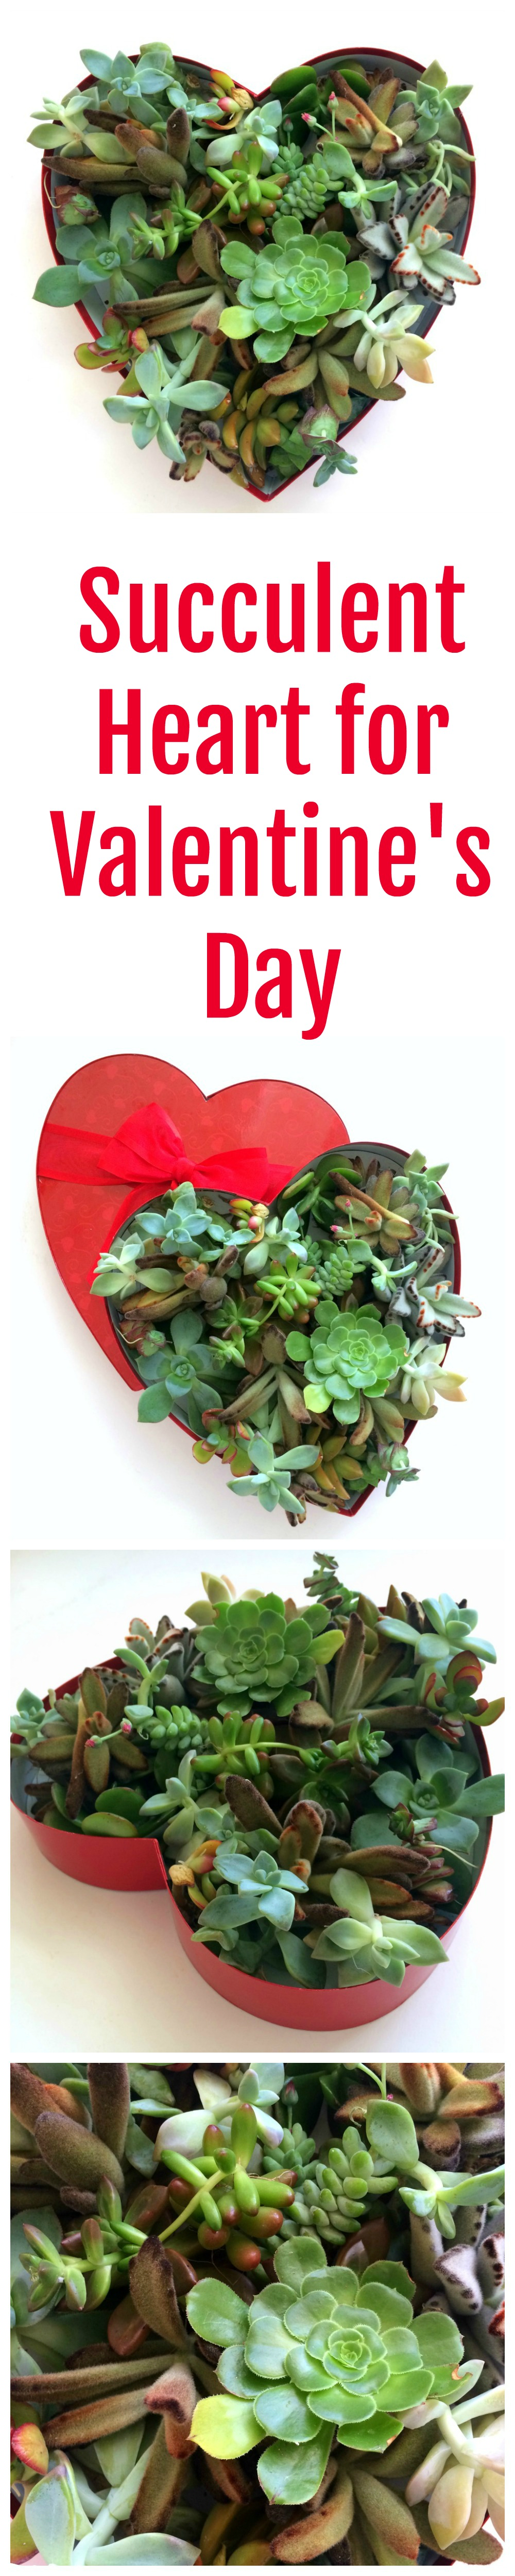 Succulent Heart for Valentine's Day on ShockinglyDelicious.com